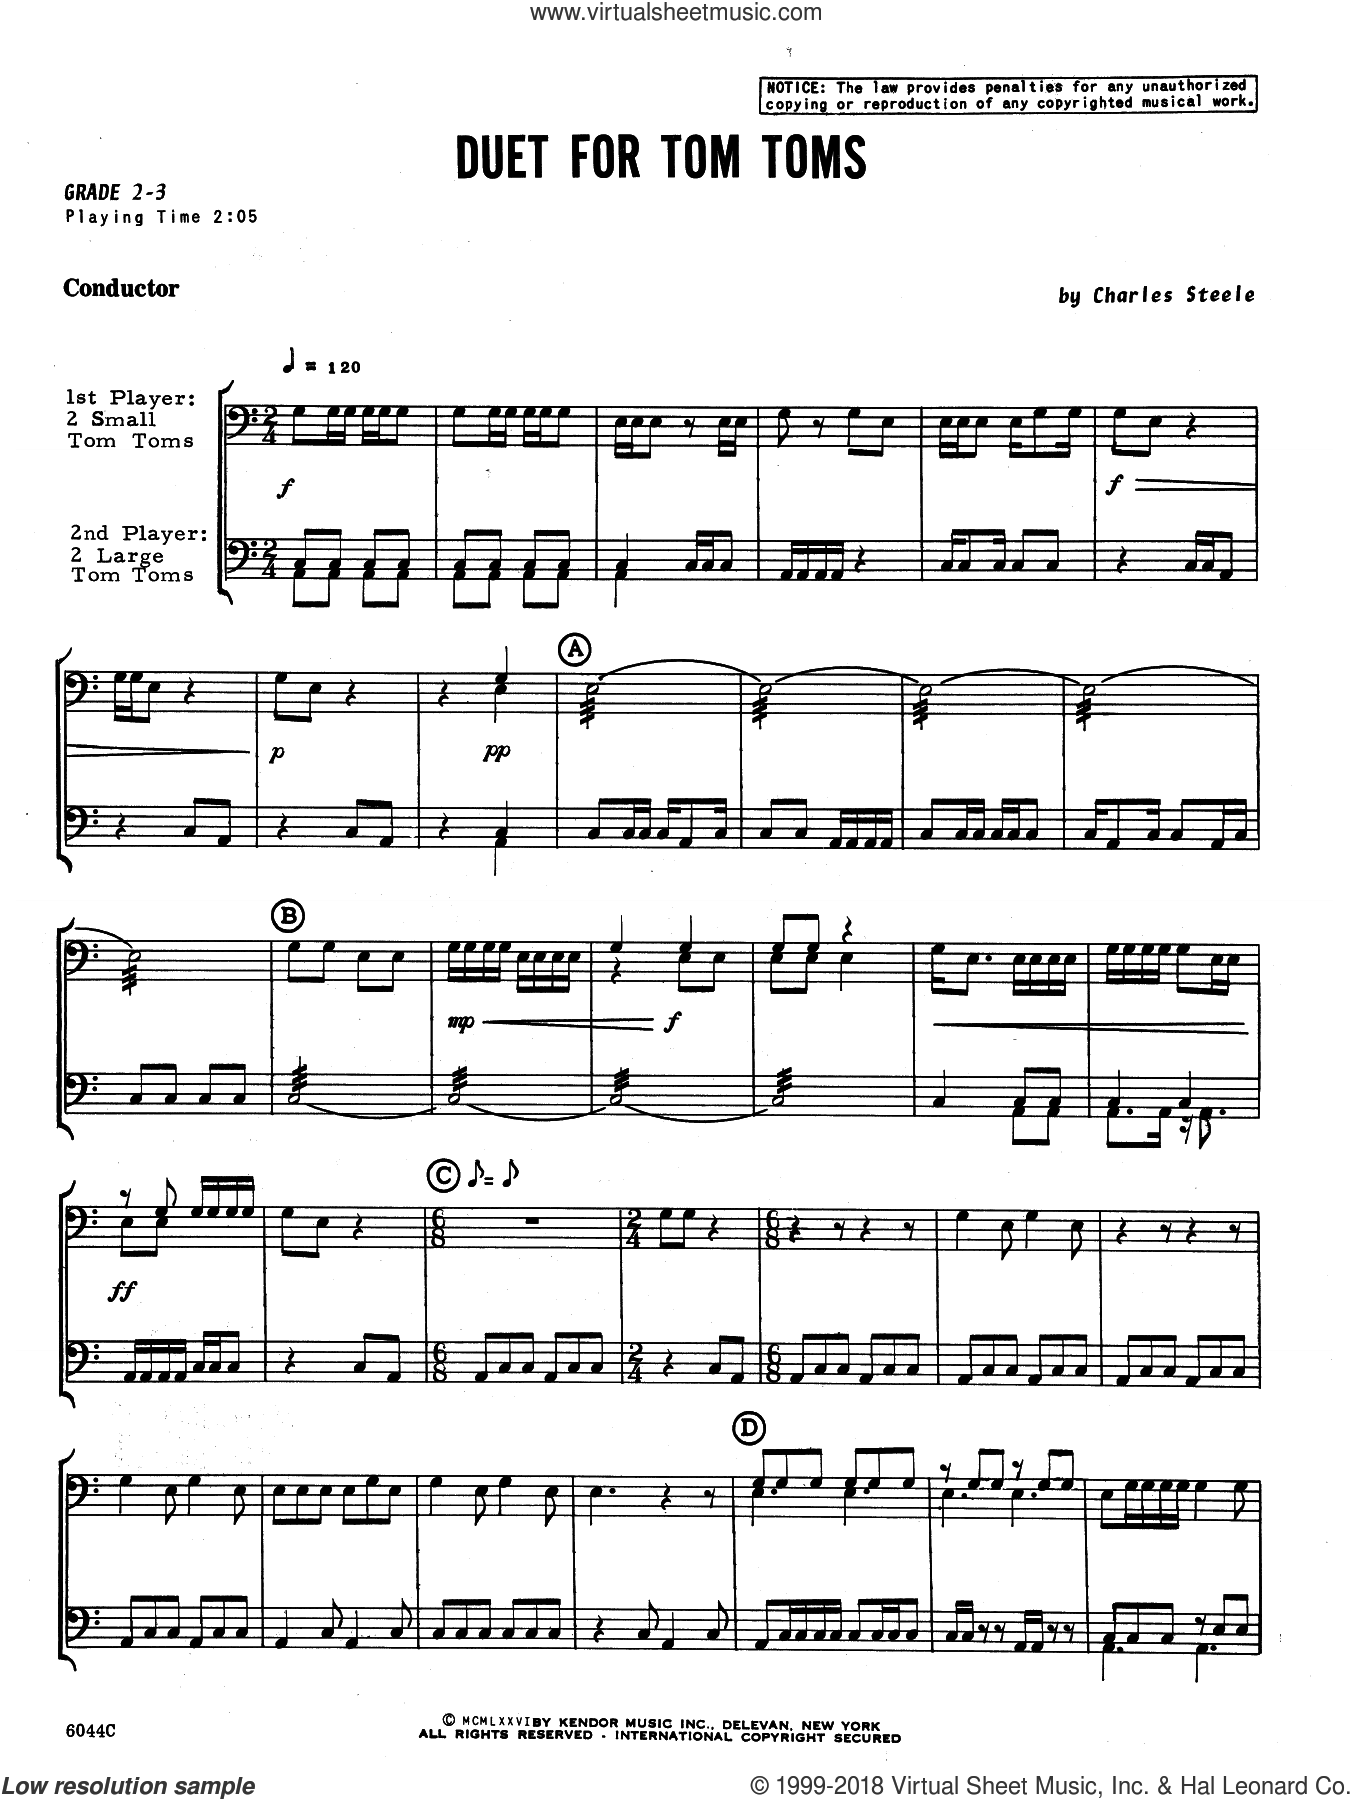 Duet For Tom Toms (COMPLETE) sheet music for percussions by Charles Steele, intermediate